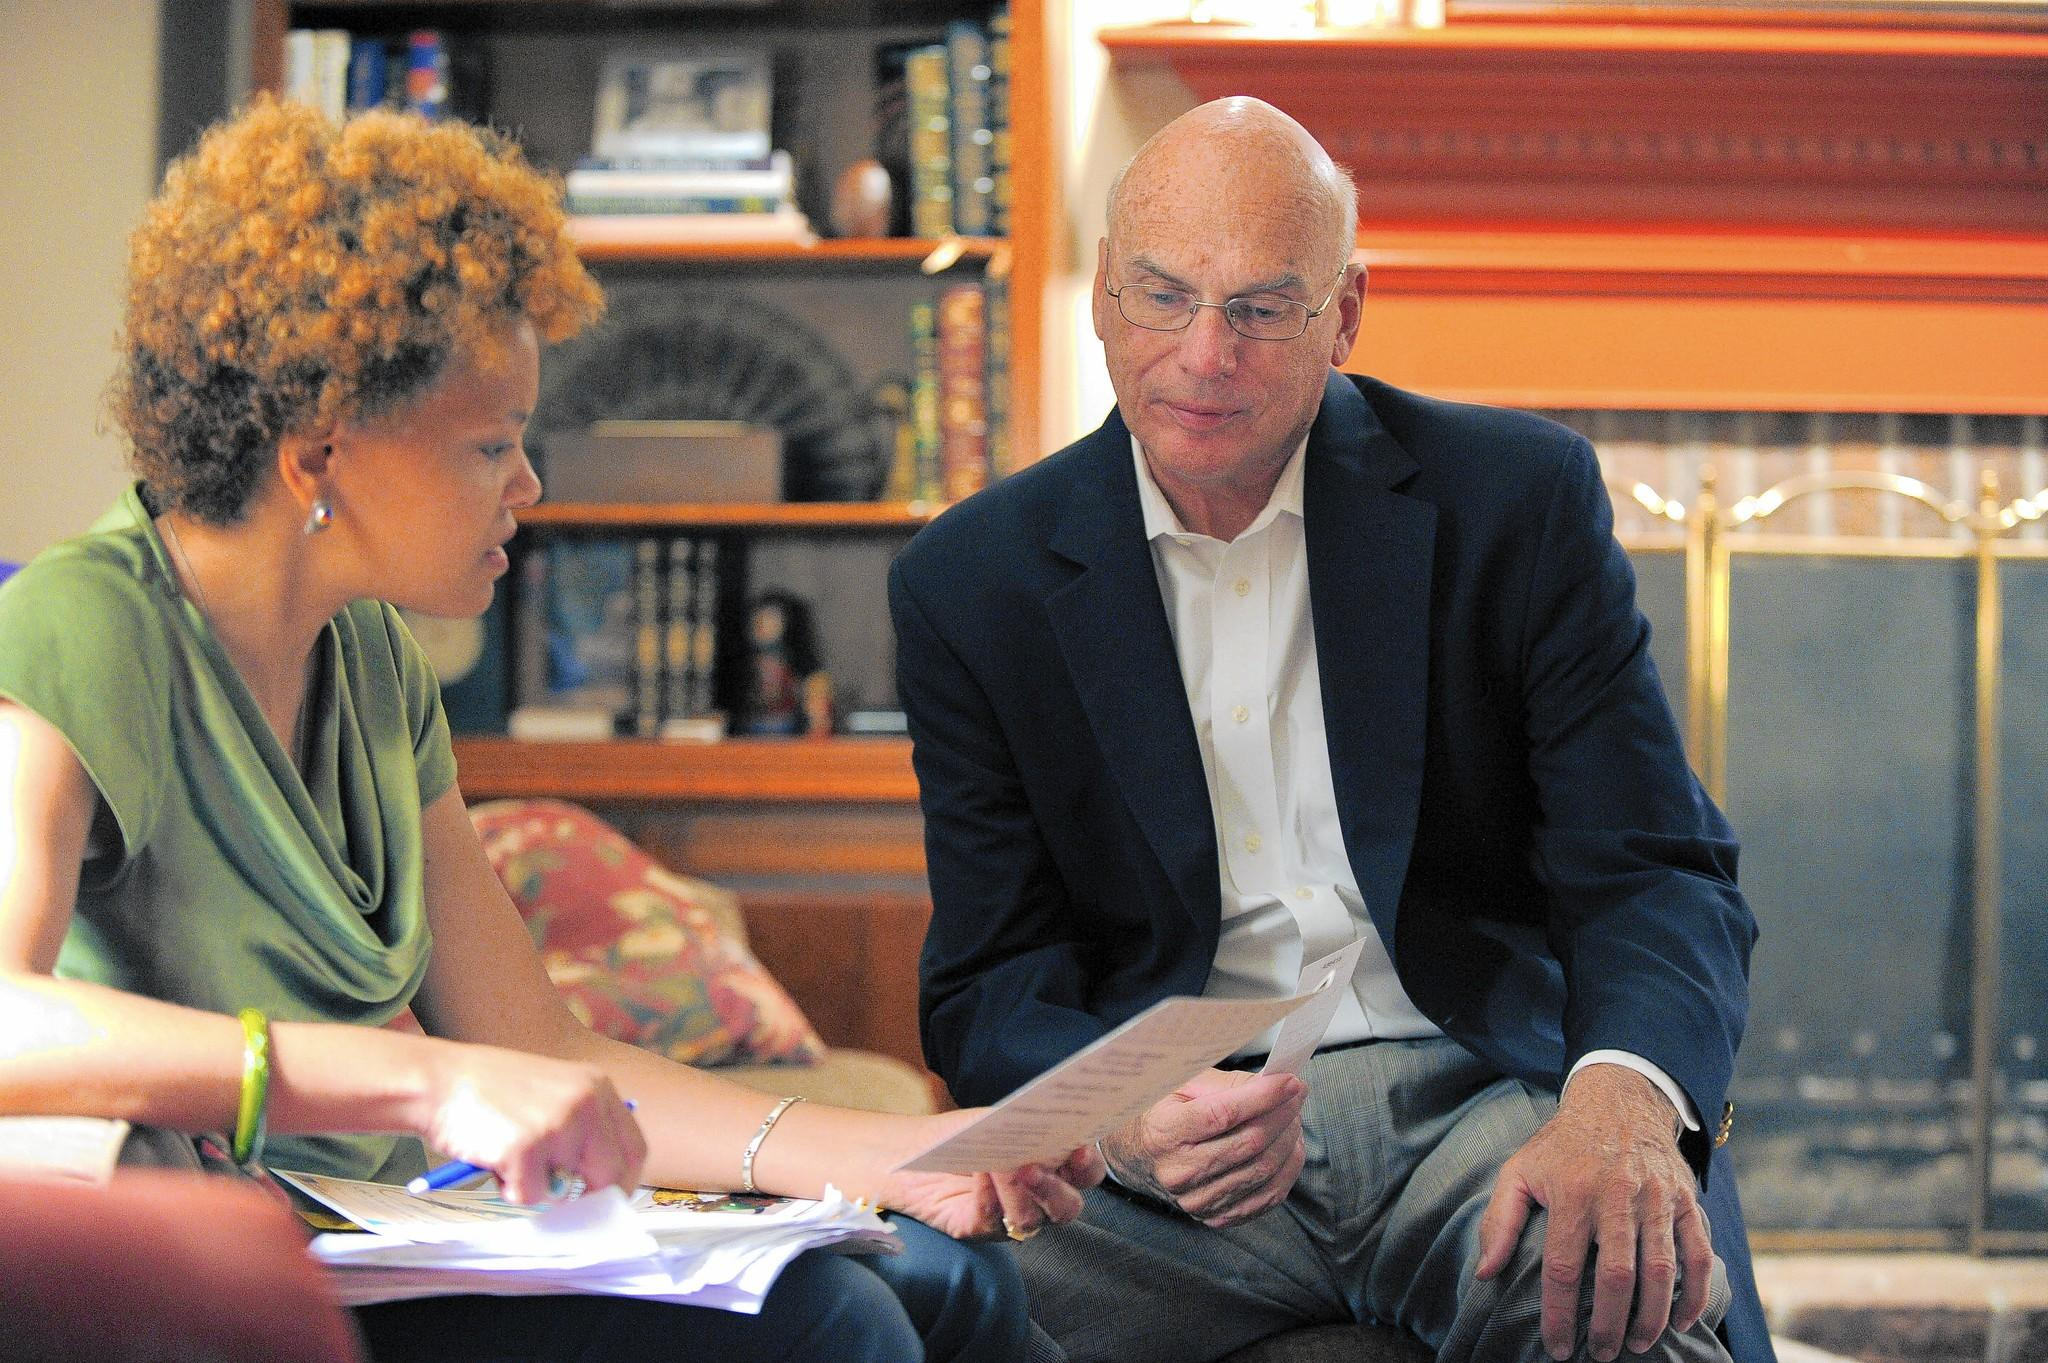 Terri Hill, a democratic candidate for District 12 delegate, reviews upcoming engagements with incumbent Sen. Edward J. Kasemeyer (D-12), who participates in a strategy session at his home Thursday, Sep 18, 2014.(